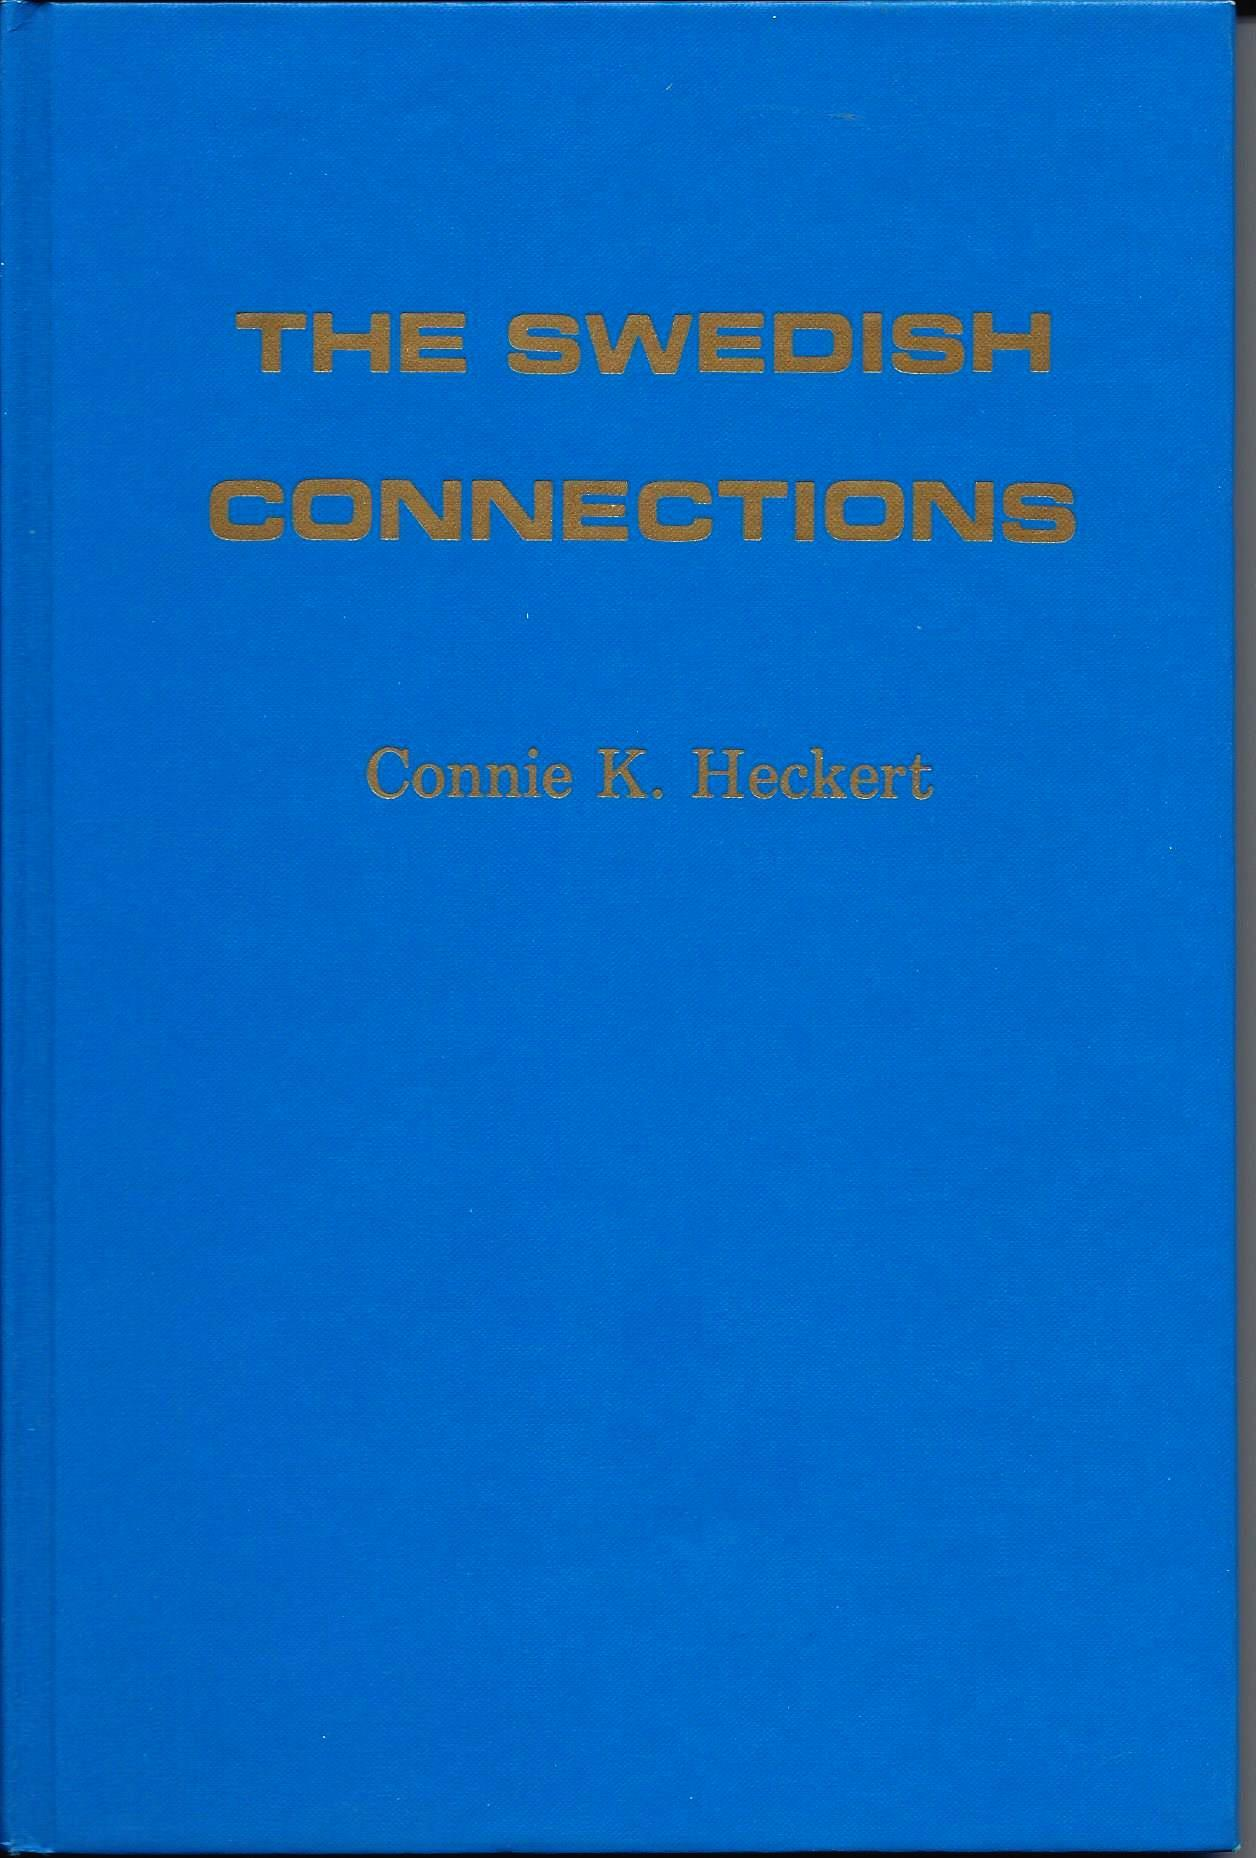 The Swedish Connections